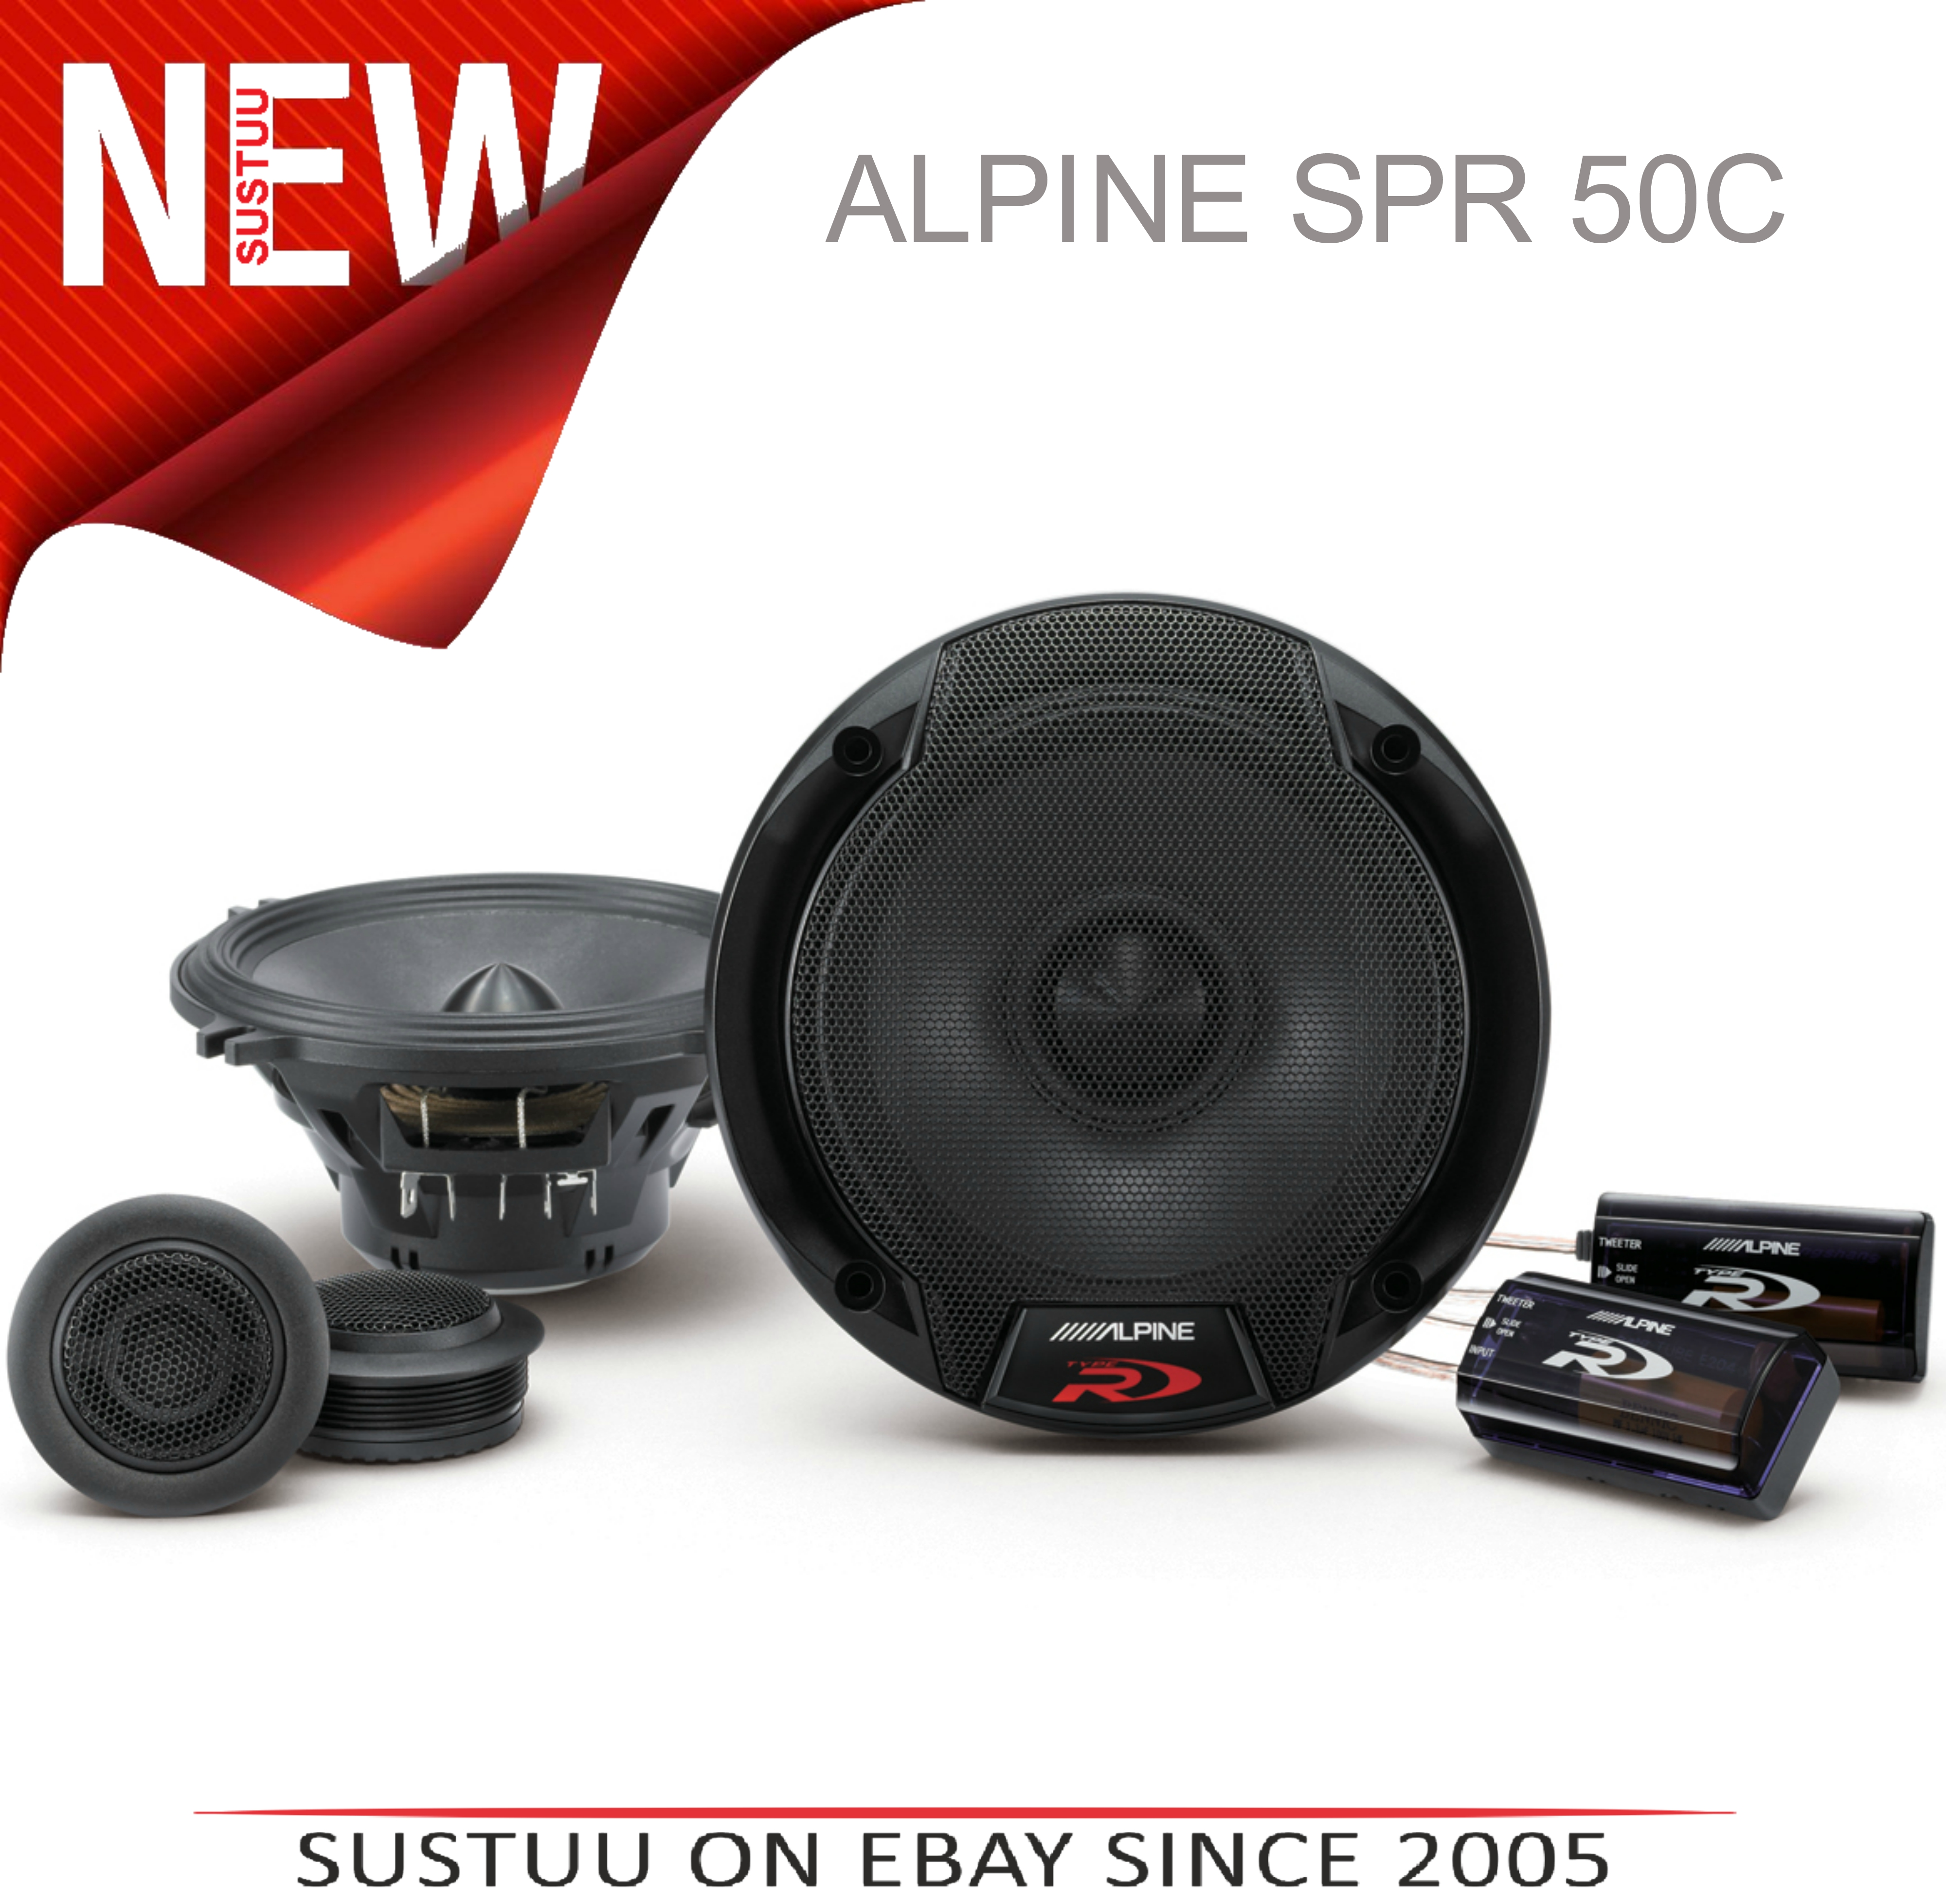 ALPINE SPR 50C 13cm 2 Way 300W In Car Vehicle Audio Sound Speaker